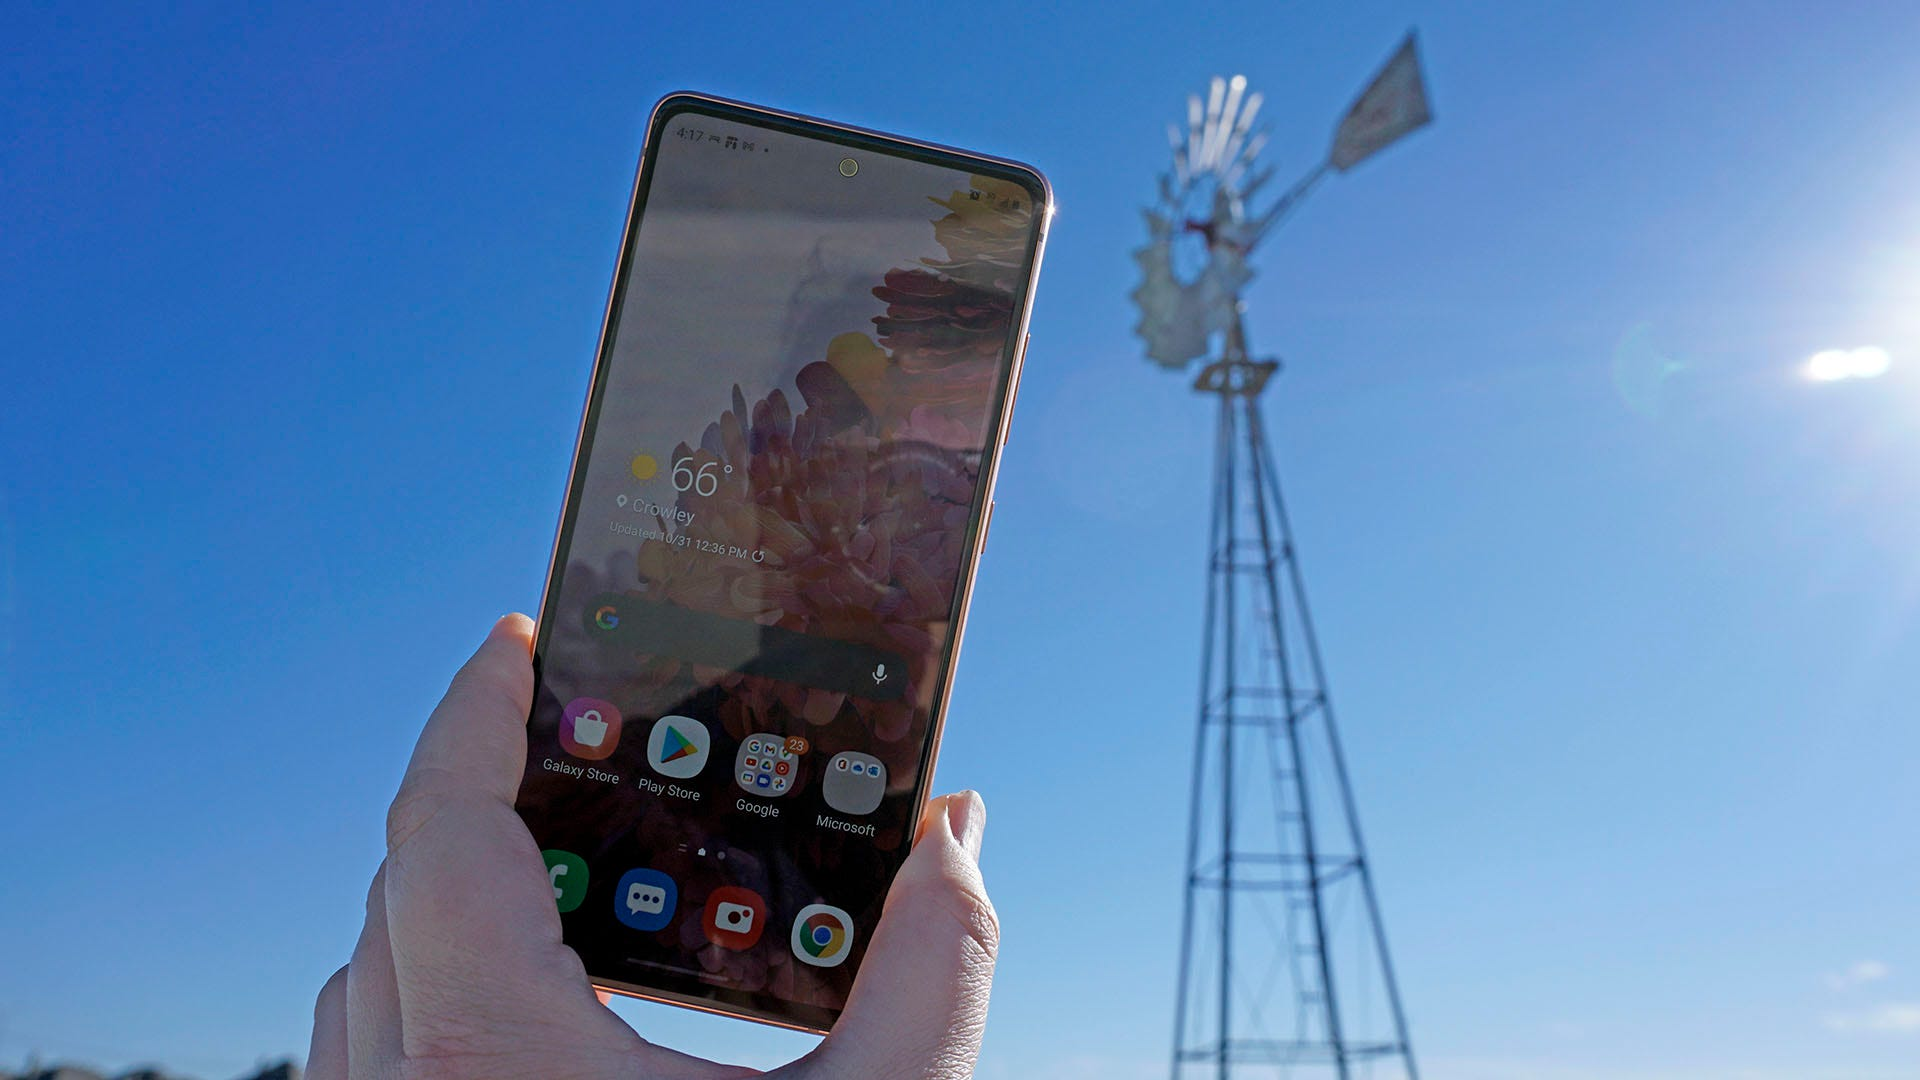 Galaxy S20 Fan Edition, with windmill in the background